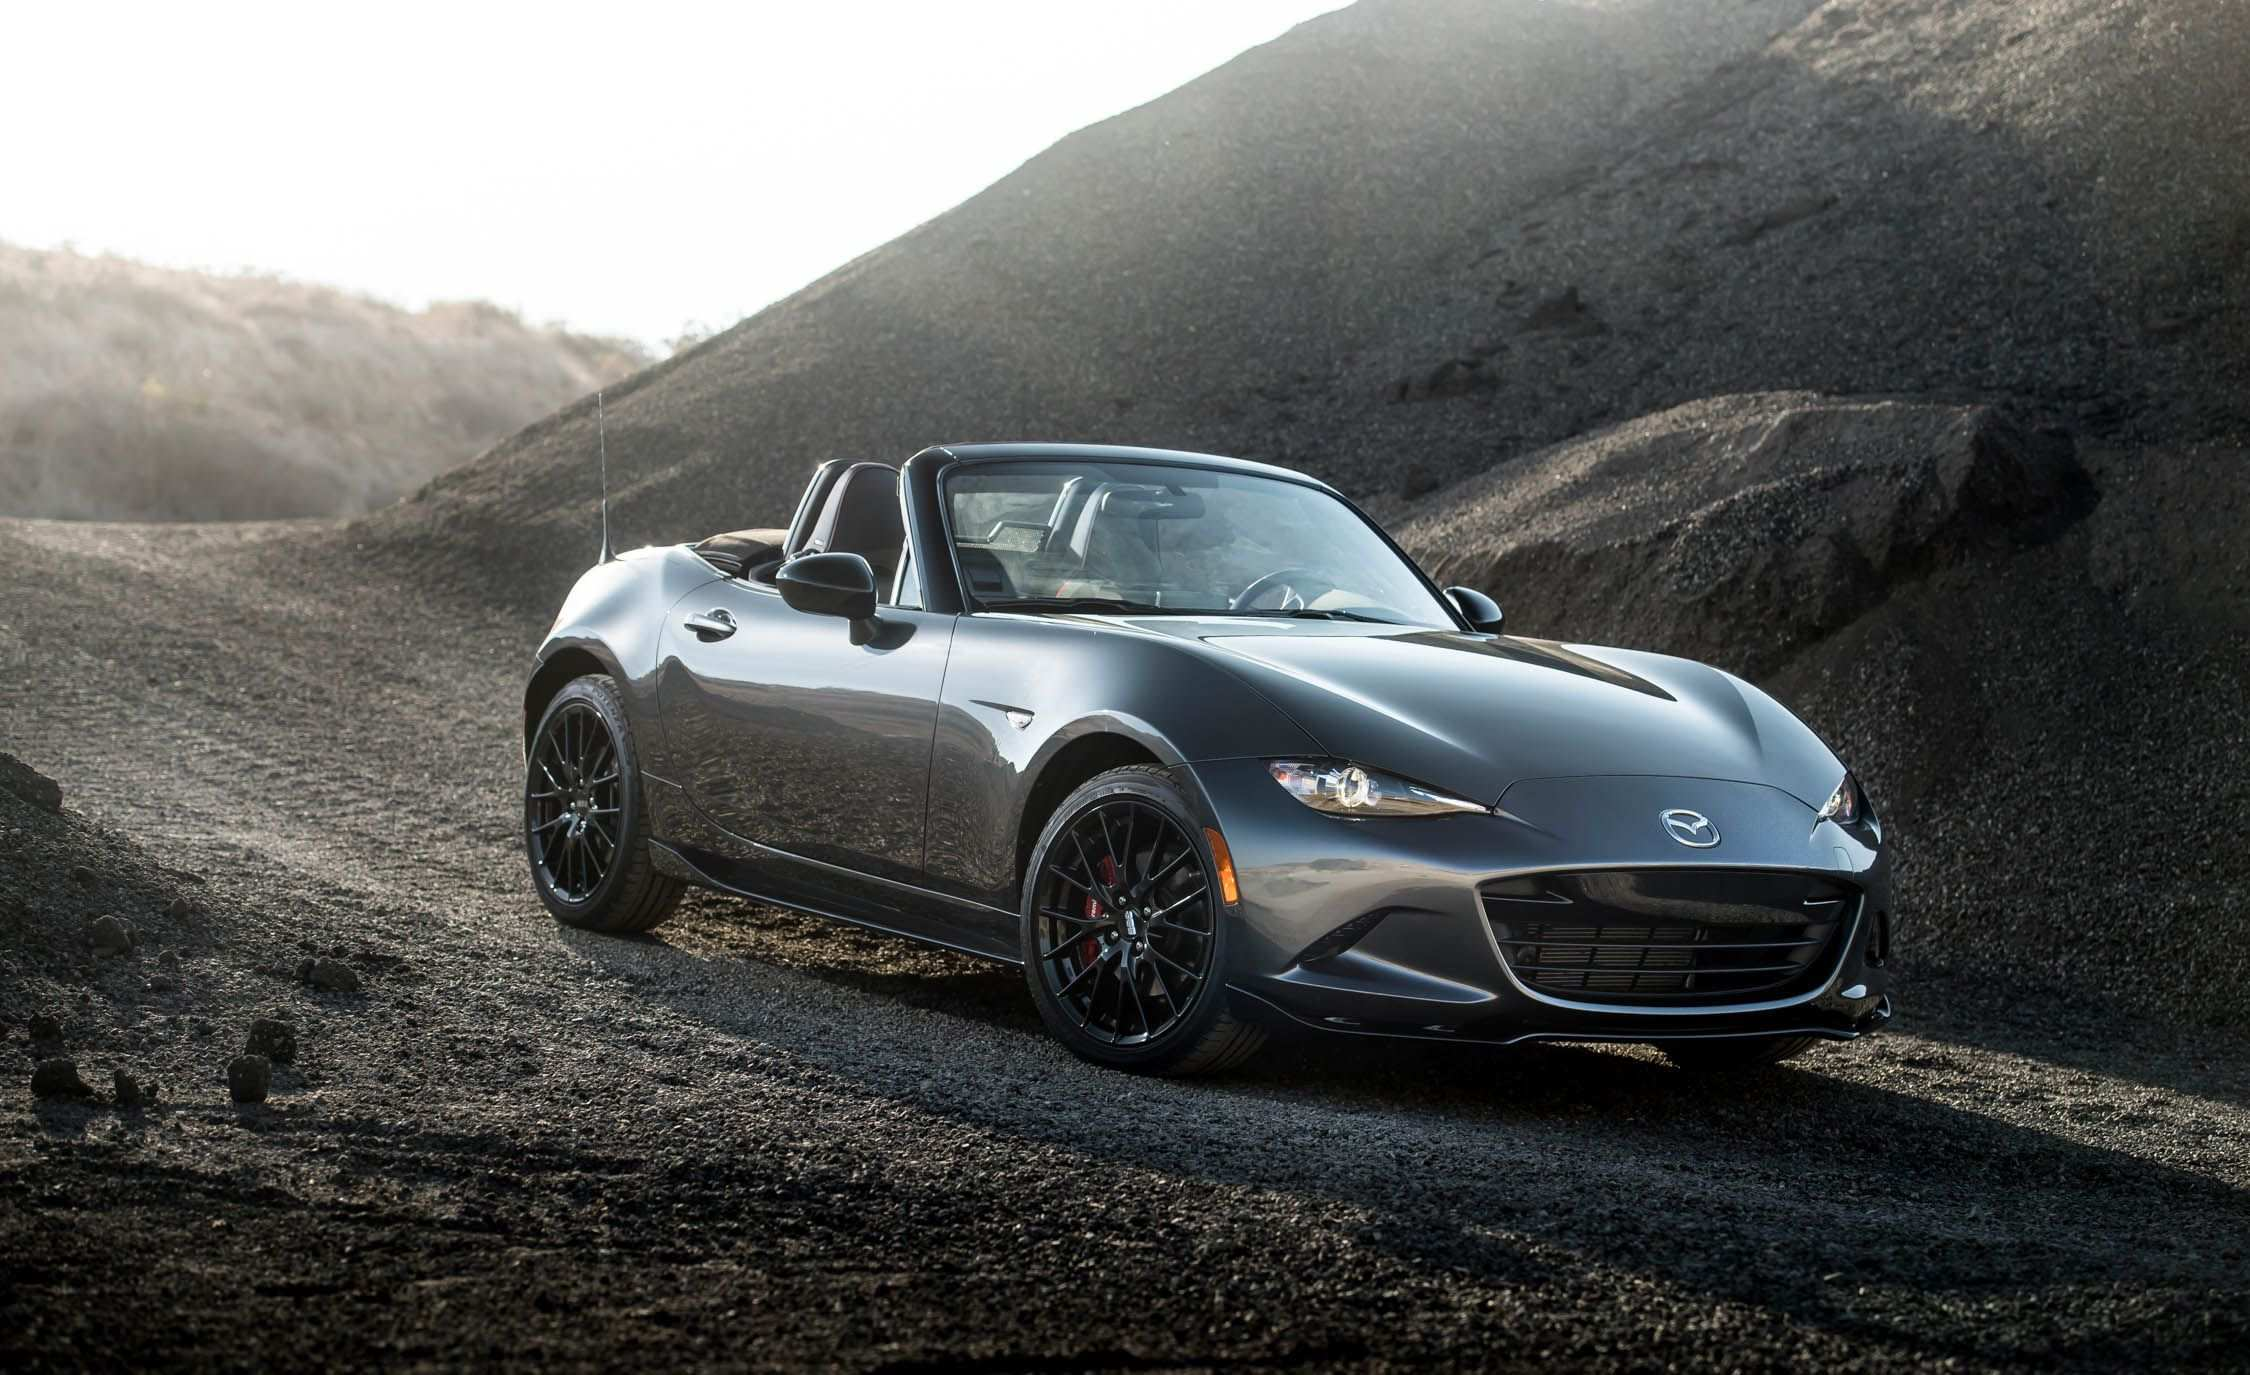 49 The Best 2019 Mazda MX 5 Speed Test